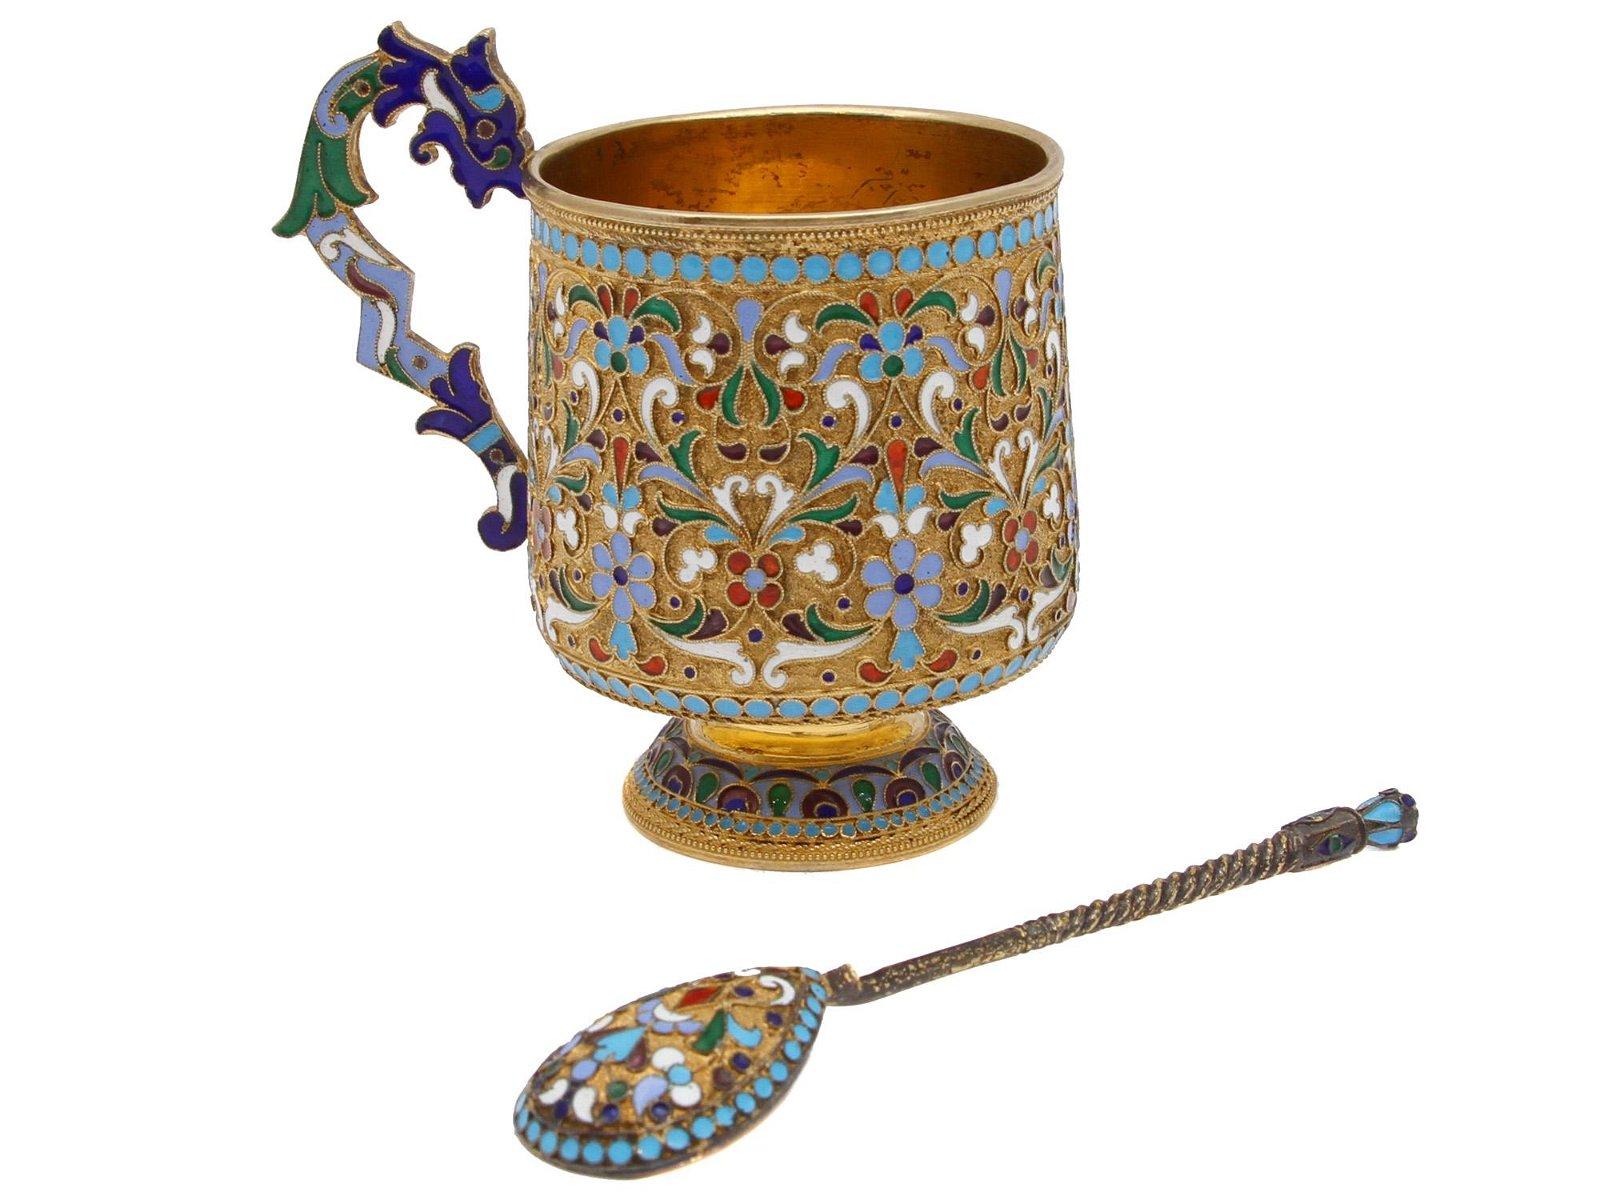 A RUSSIAN GILT ENAMELED SILVER CUP AND SPOON